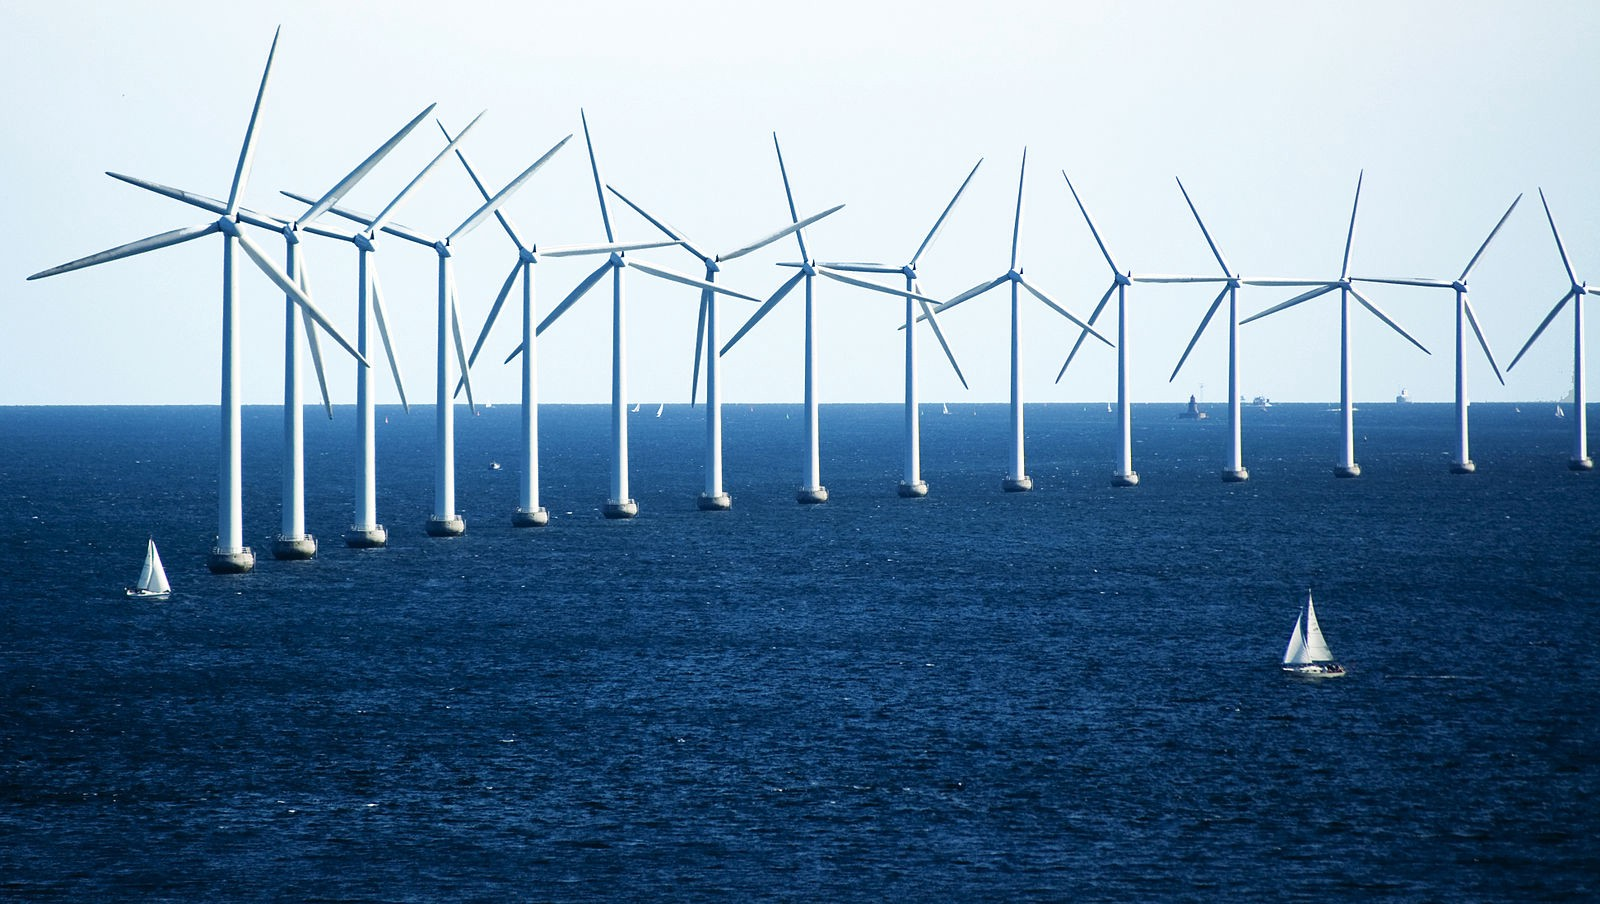 Using windmills as an alternative source of energy for green manufacturing